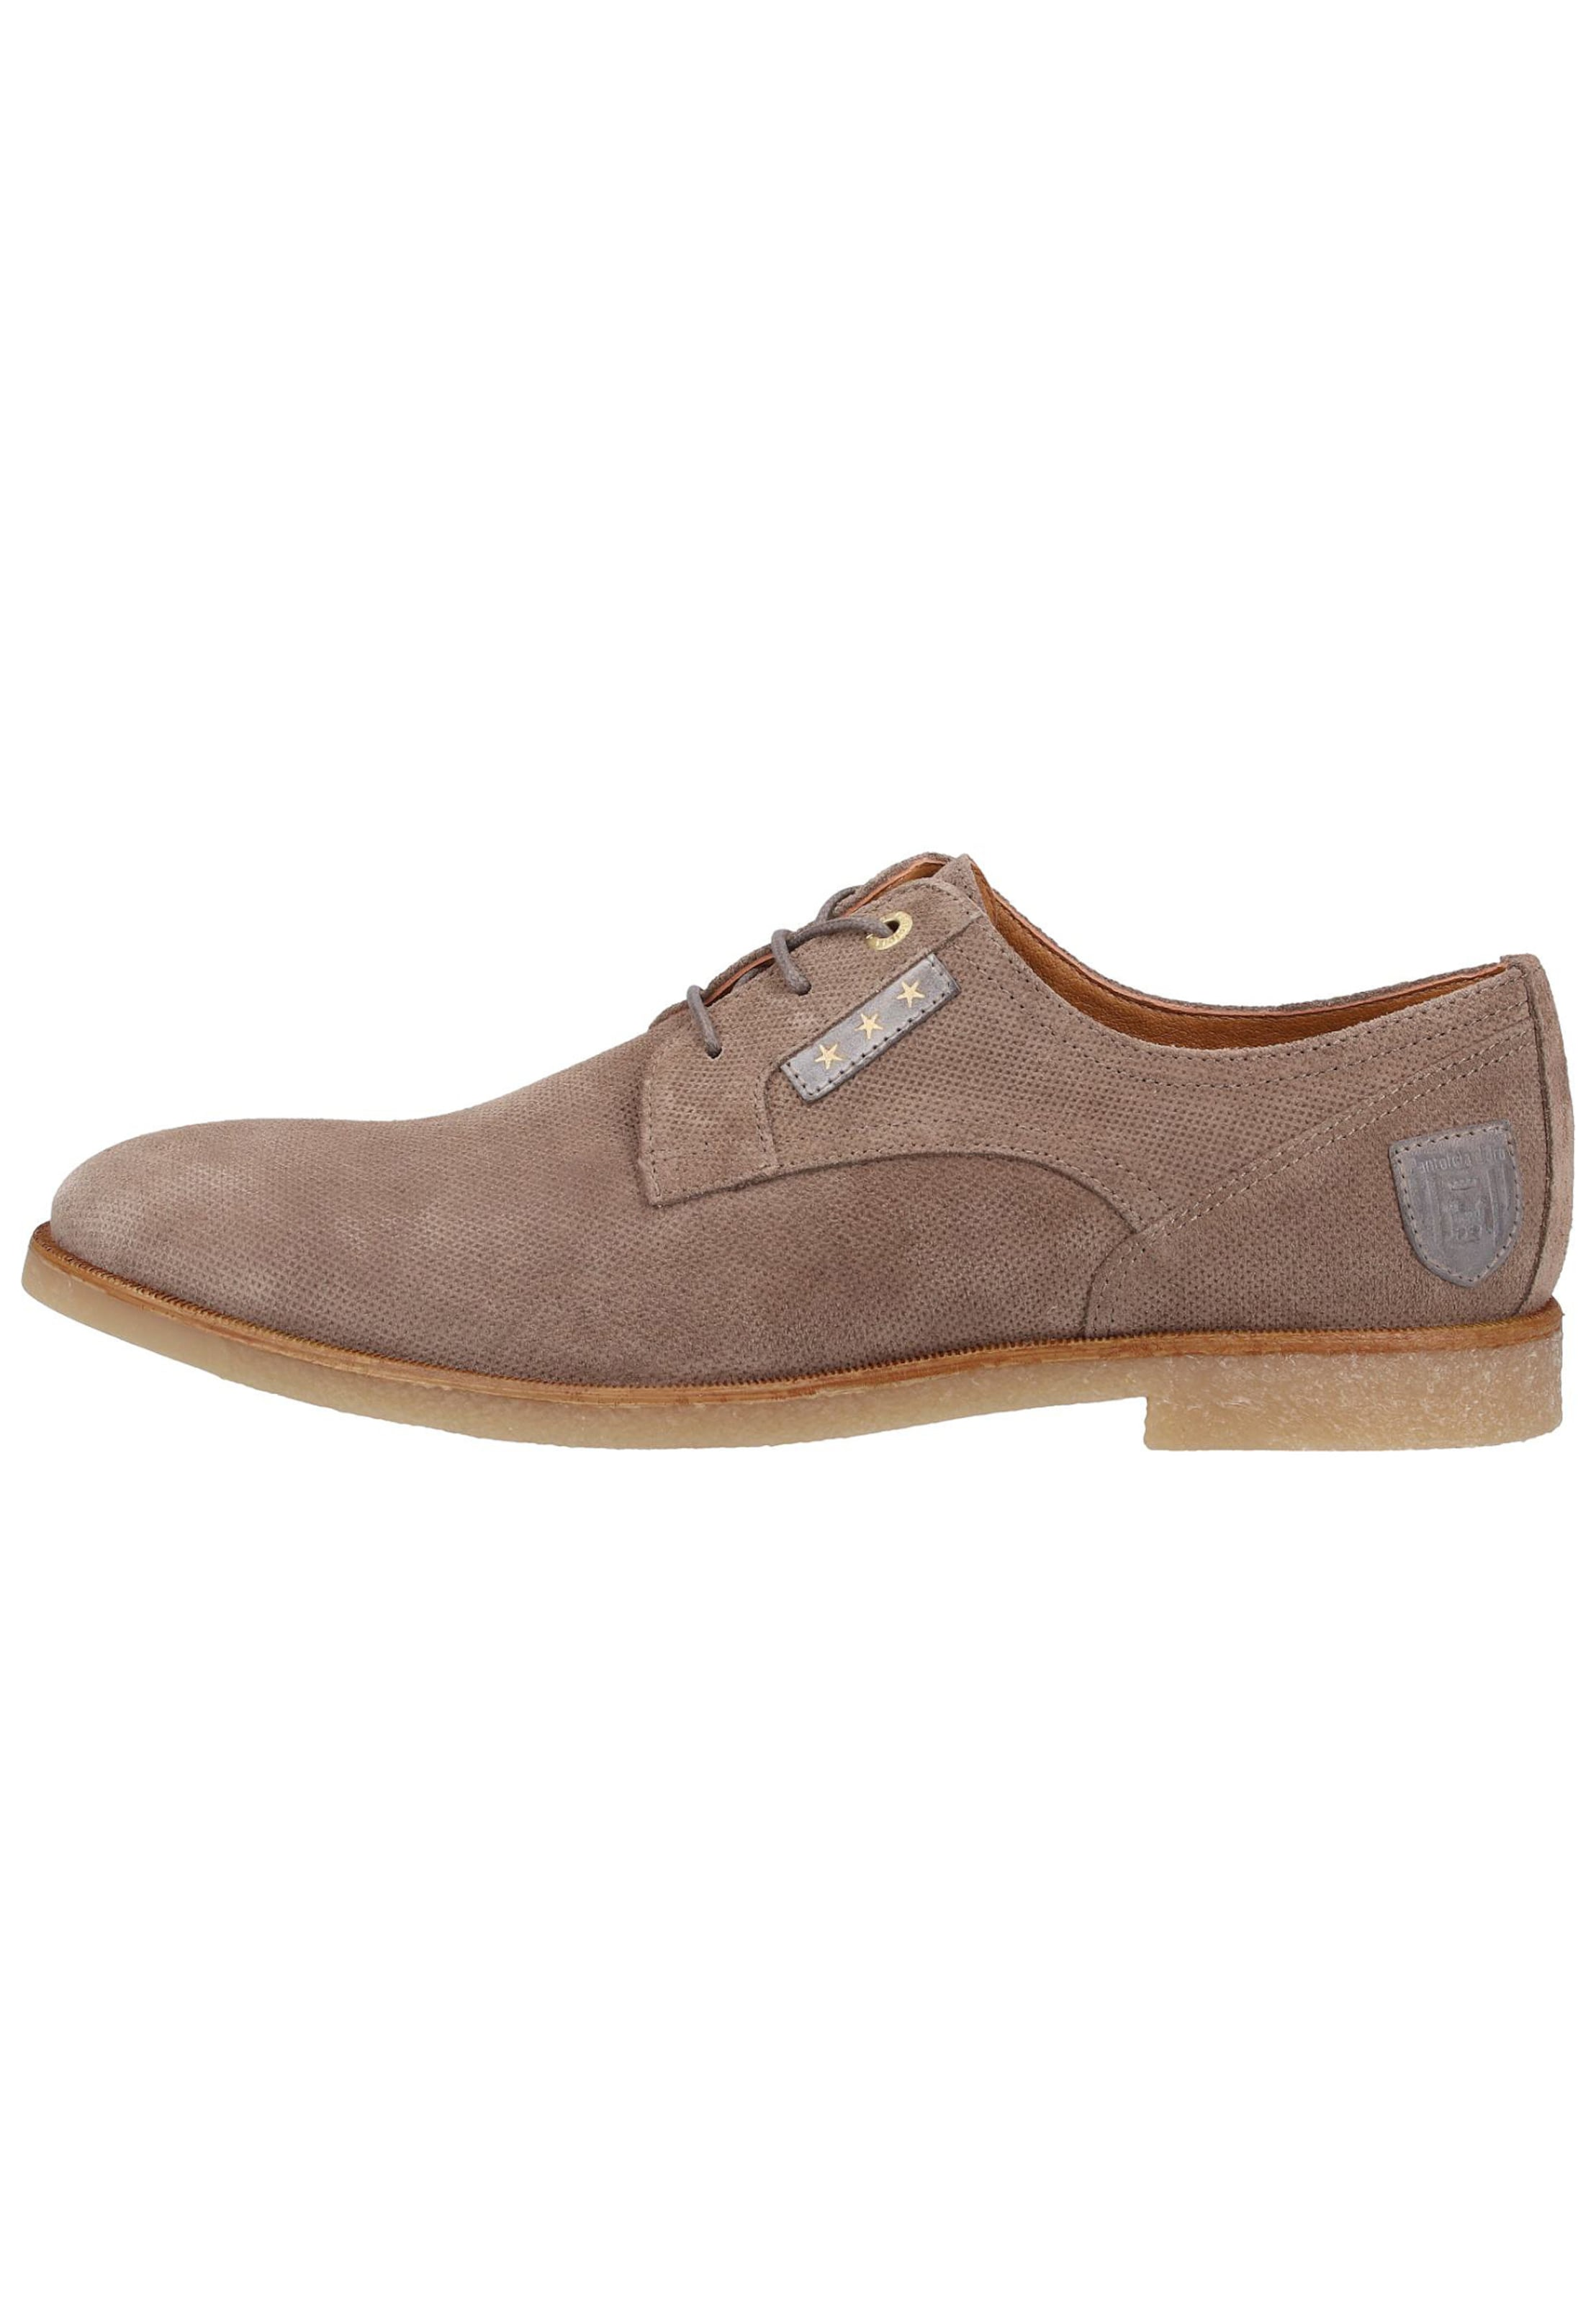 In Pantofola Halbschuhe D'oro D'oro In Taupe Taupe Pantofola D'oro Pantofola Halbschuhe edxBWrCo